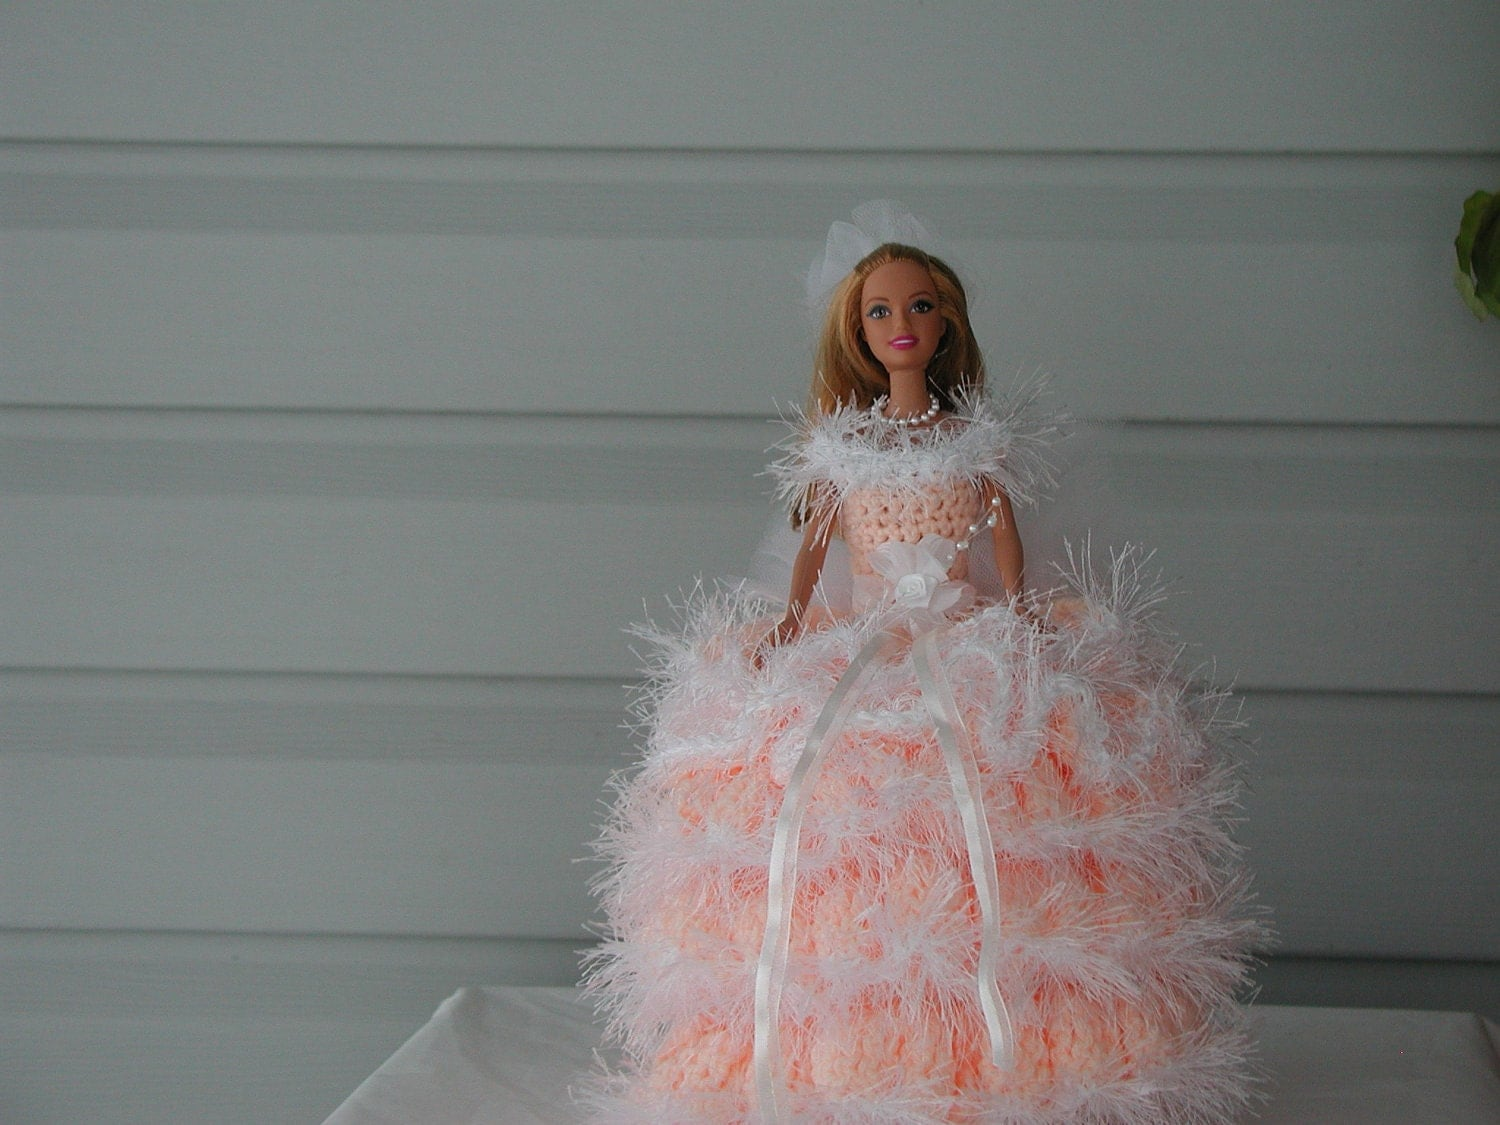 Barbie Doll Toilet Paper Doll Peach By Bluelady540 On Etsy